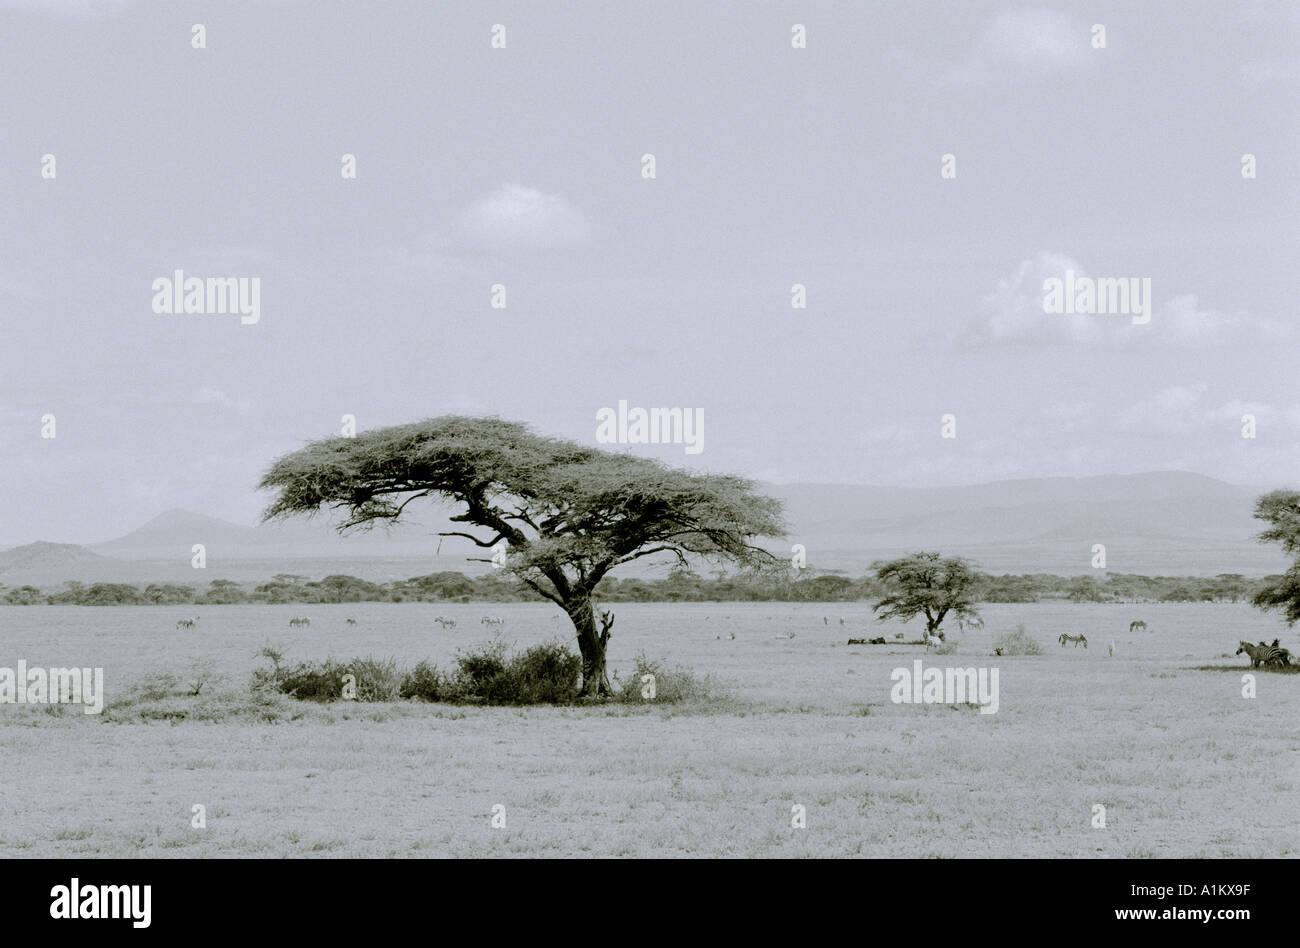 World Landscapes. Adventure safari travel in the beautiful Serengeti National Park landscape in Tanzania in Africa. Stock Photo